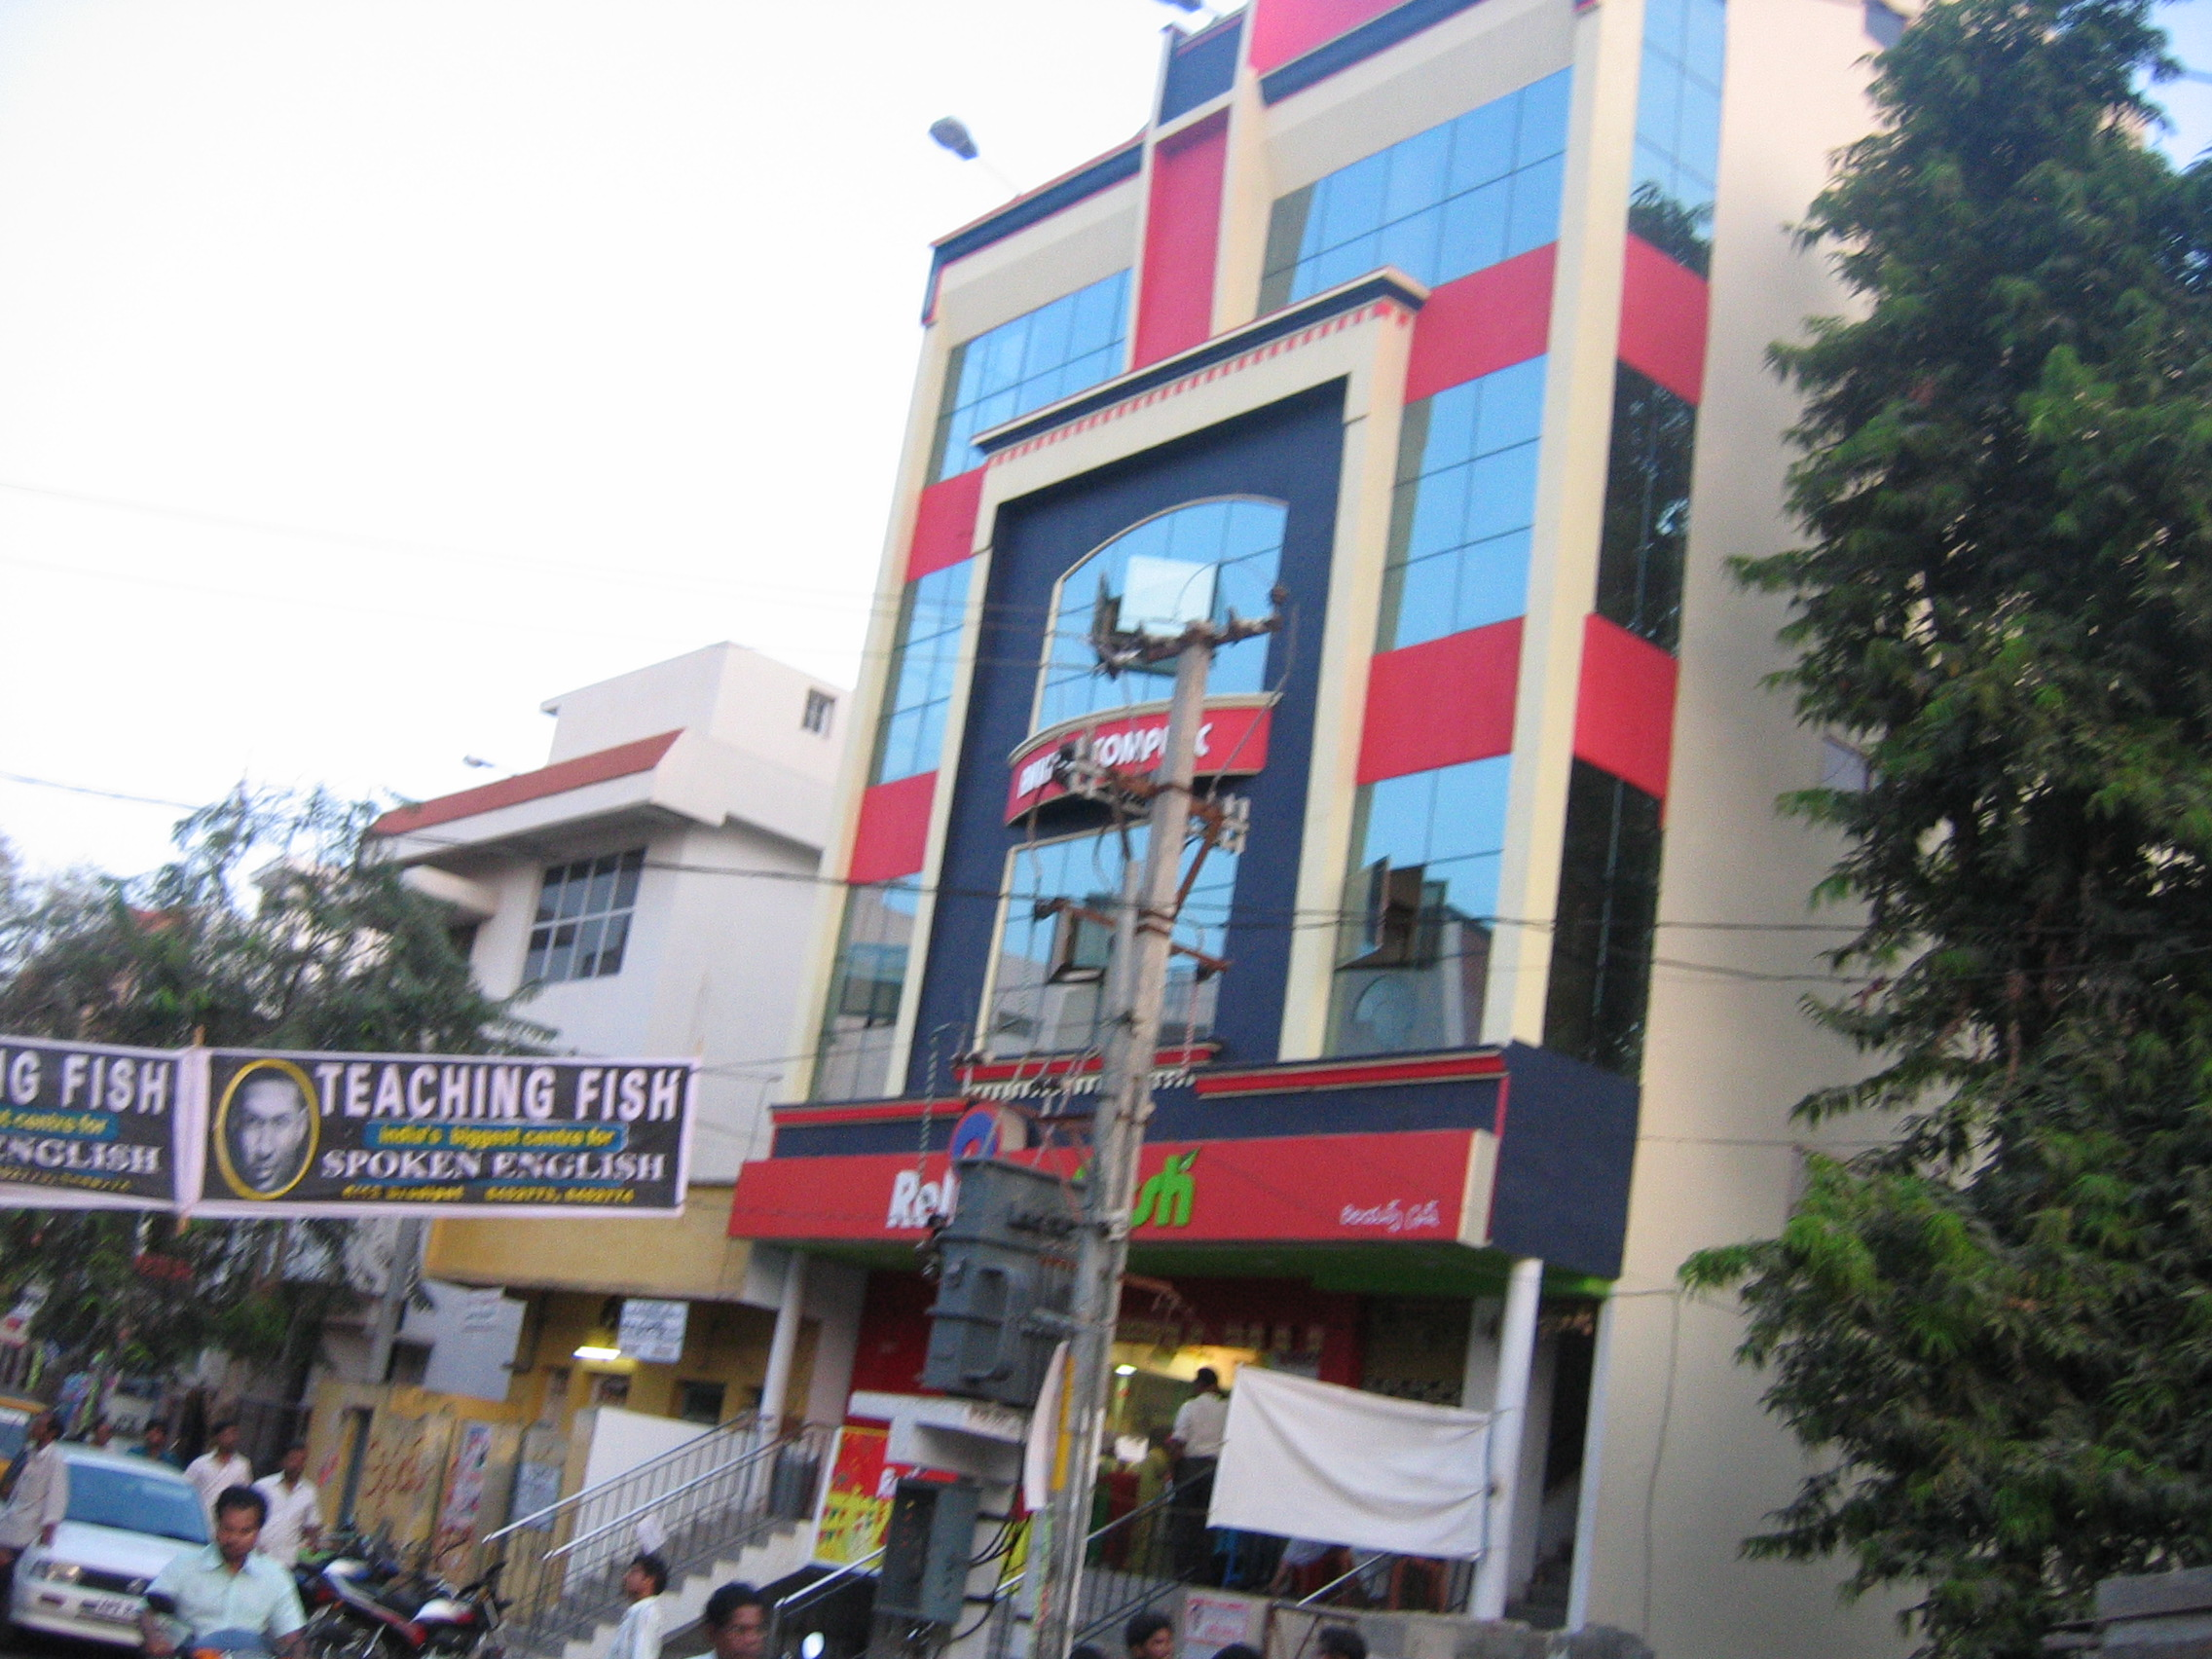 reliance departmental store